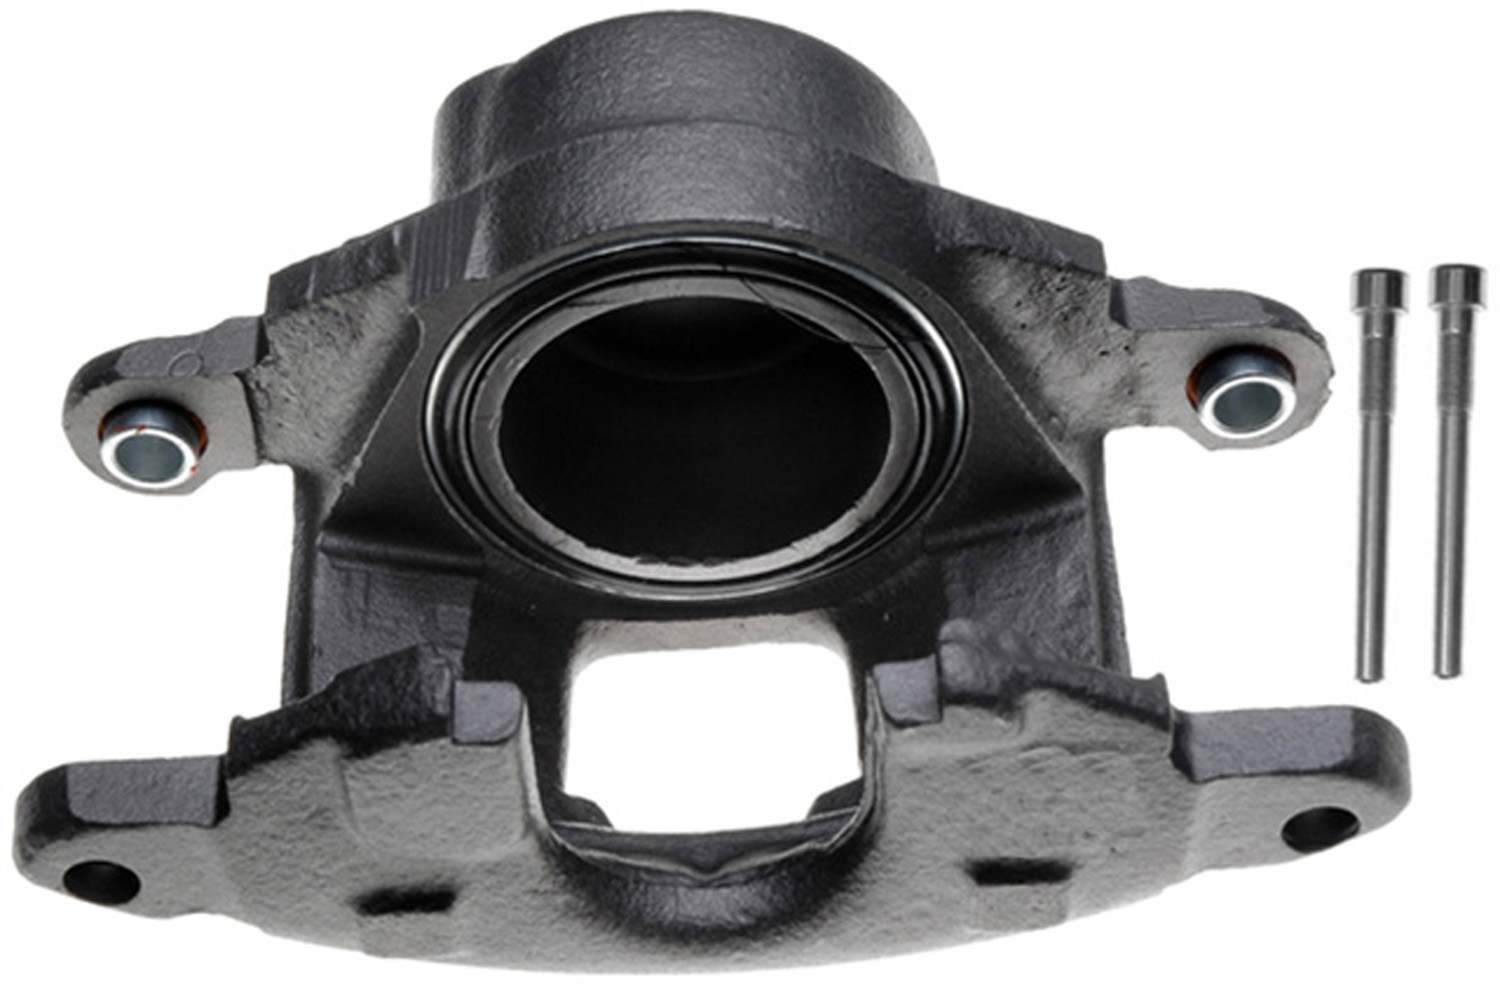 ACDELCO PROFESSIONAL BRAKES - Remanufactured Friction Ready Non-Coated - ADU 18FR641